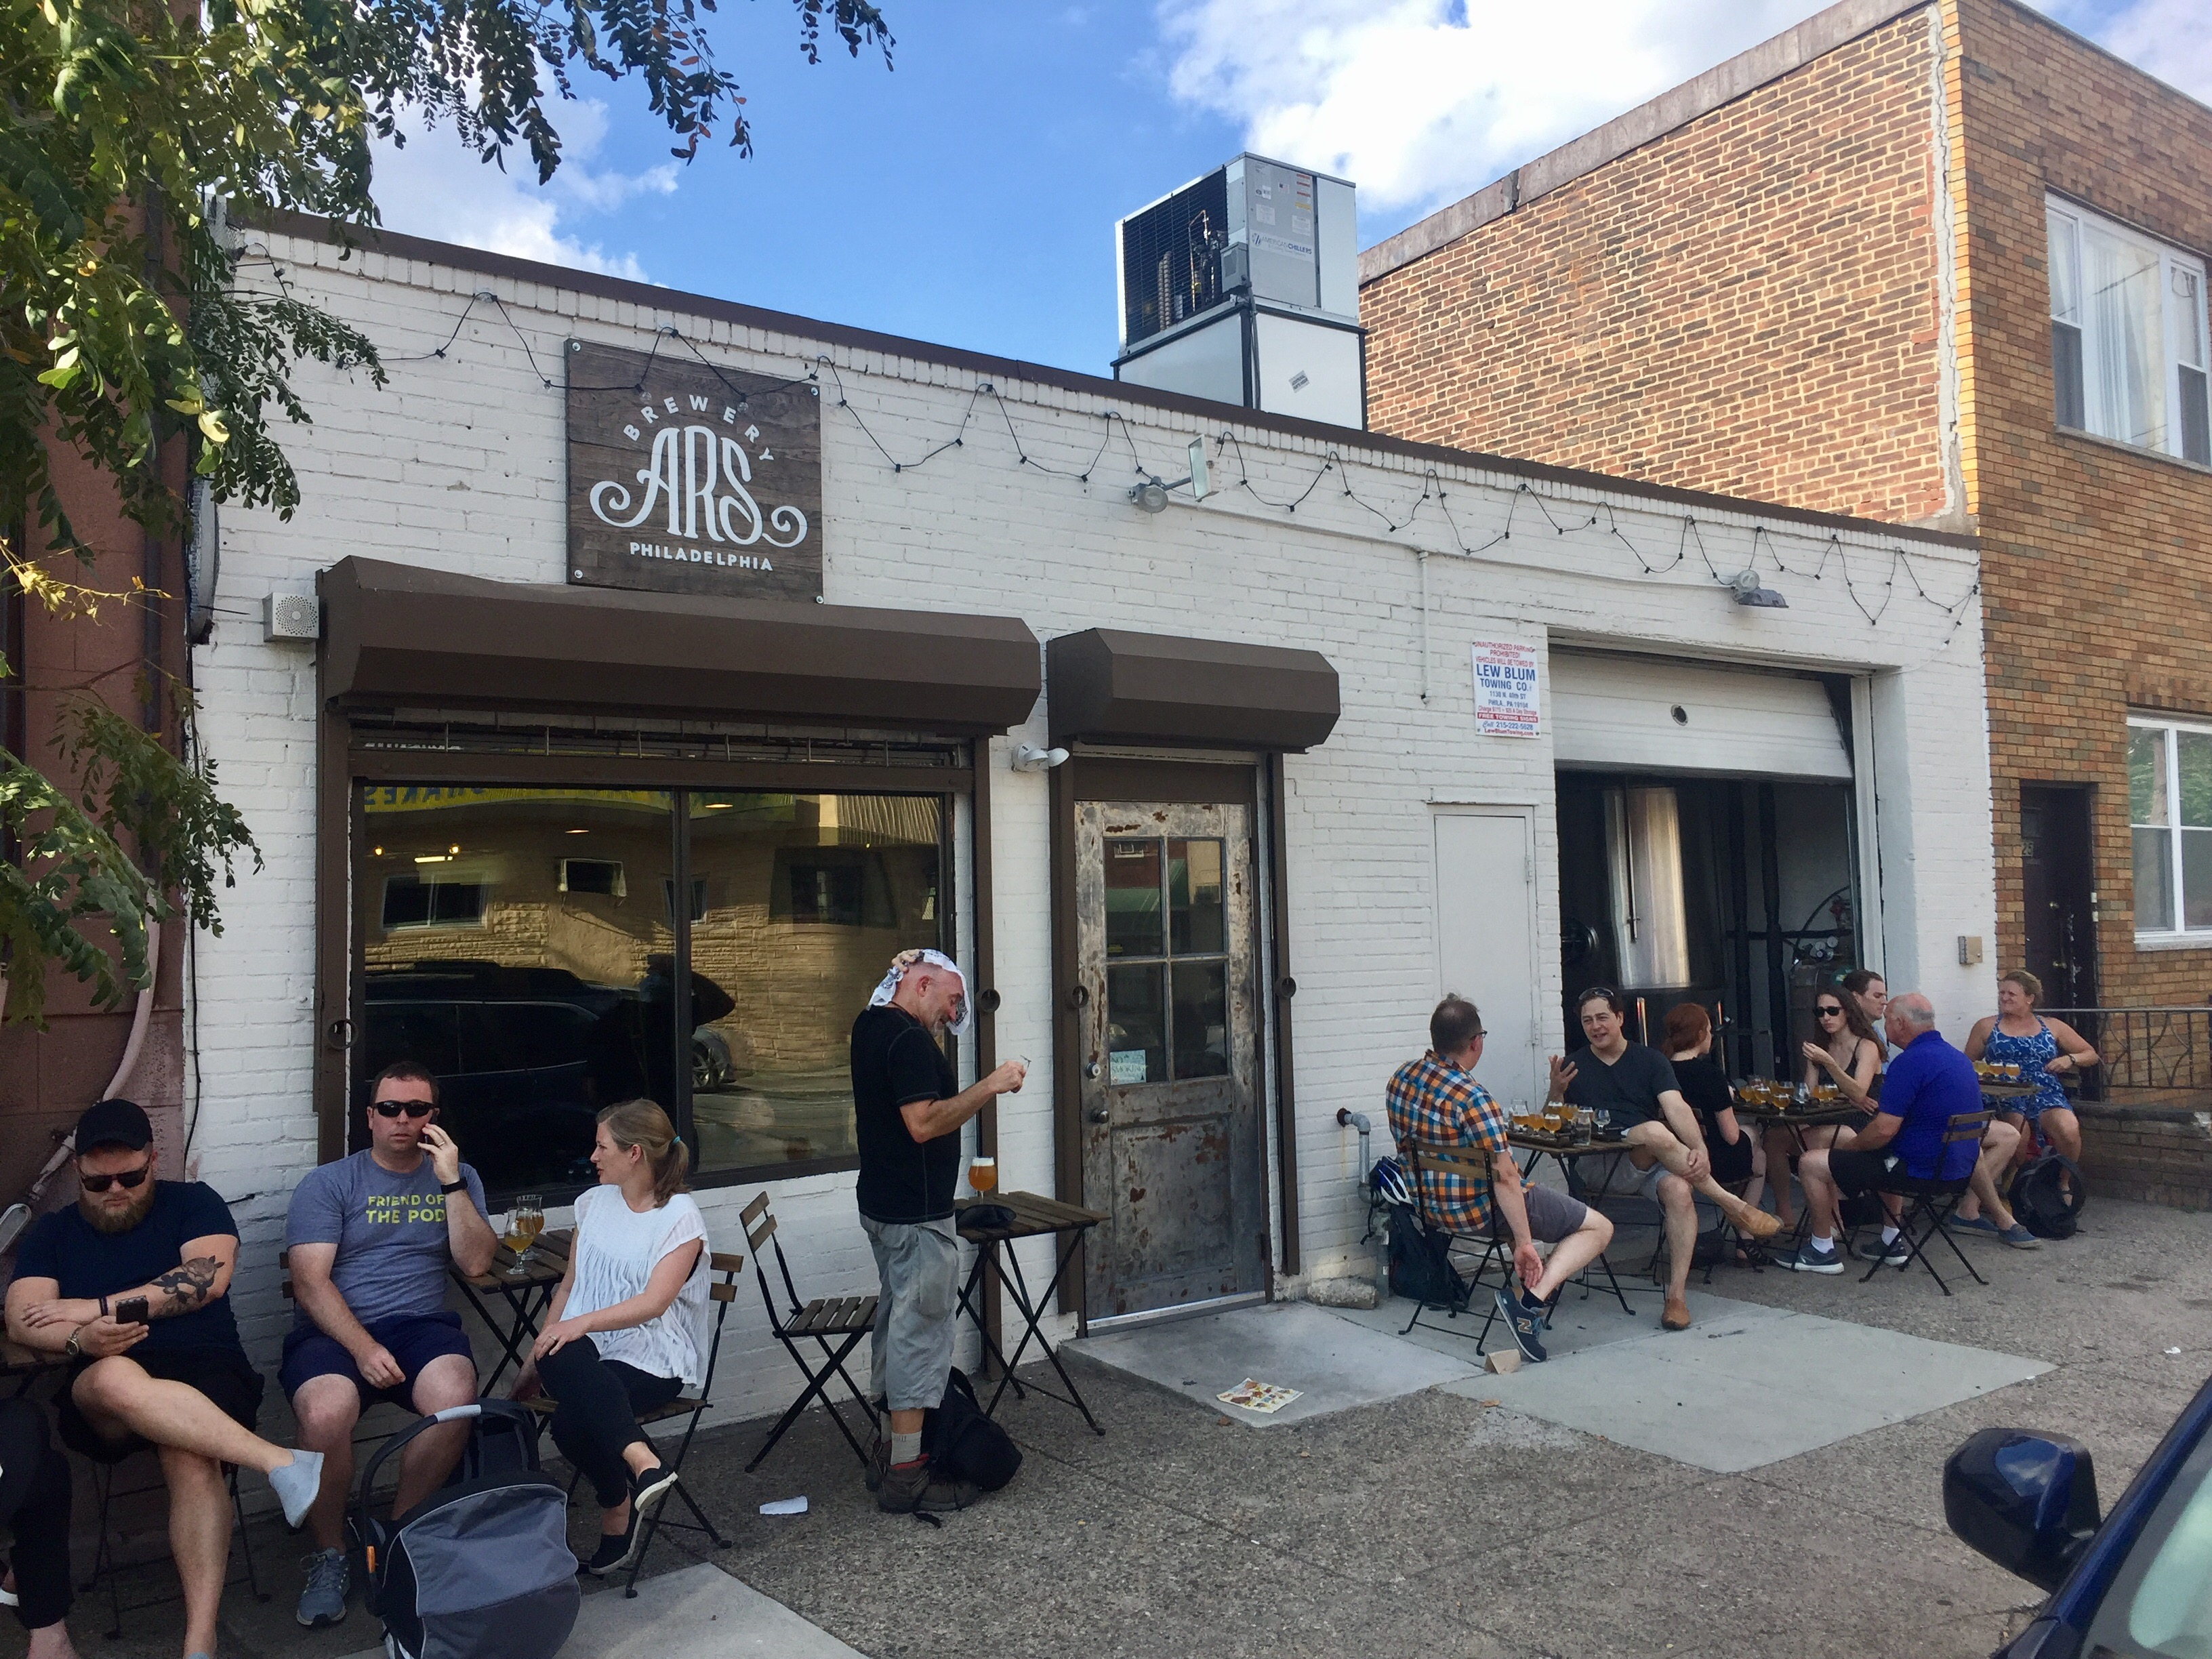 Weekend drinkers sample the beers outside Ars Brewery, which opened this year in a former garage on West Passyunk Ave. CRAIG LABAN/Staff